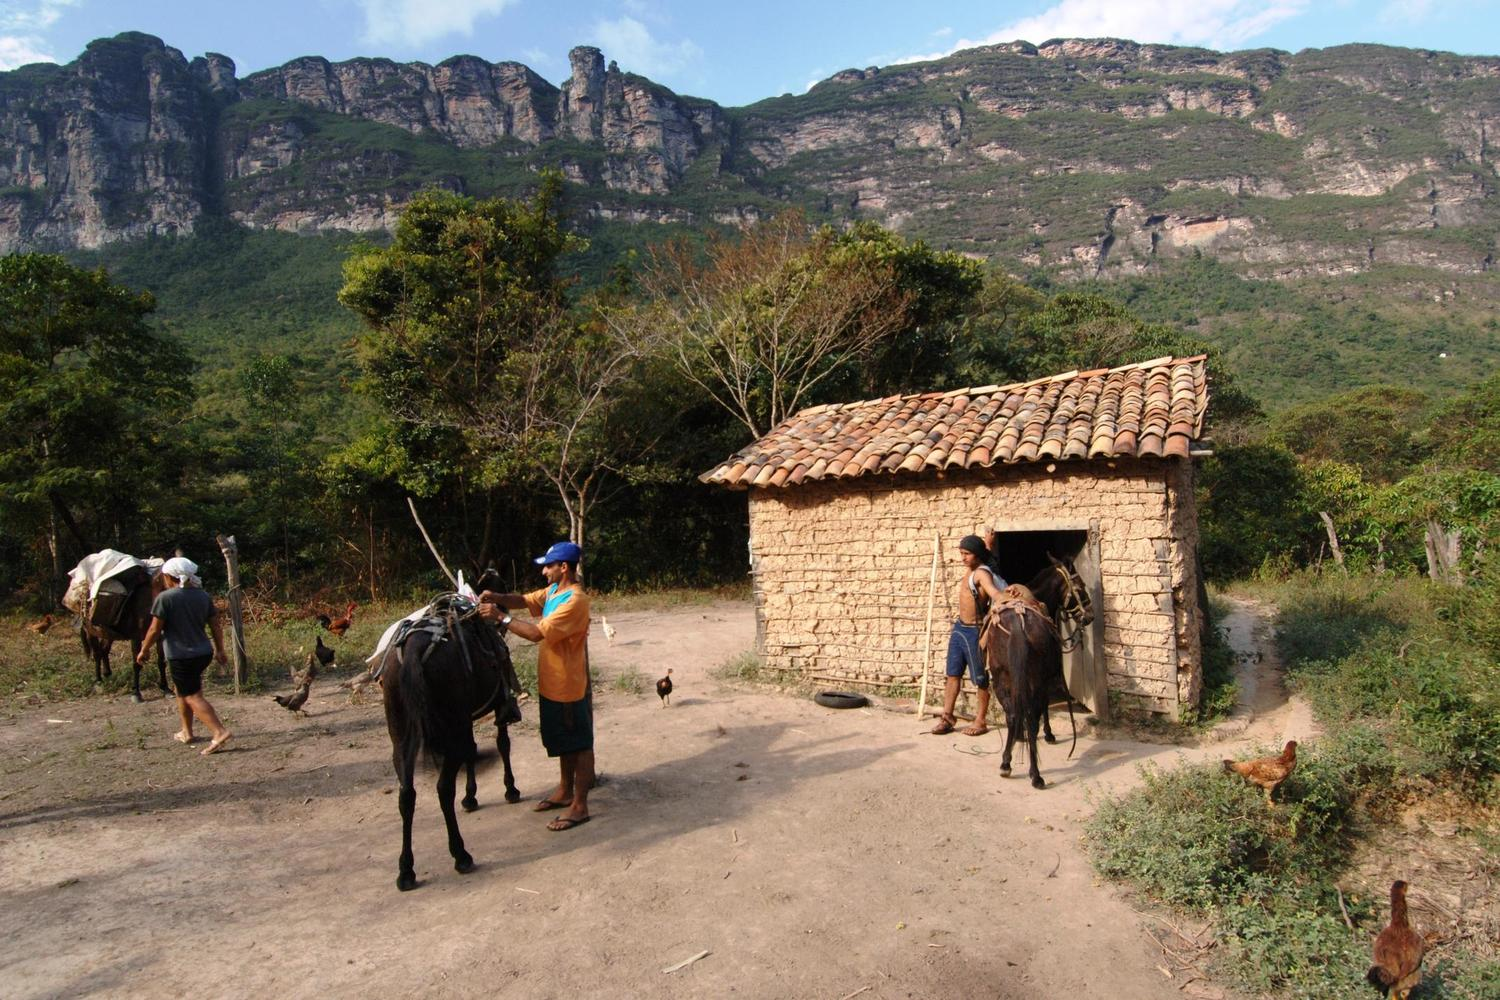 Loading up the mules in the Chapada